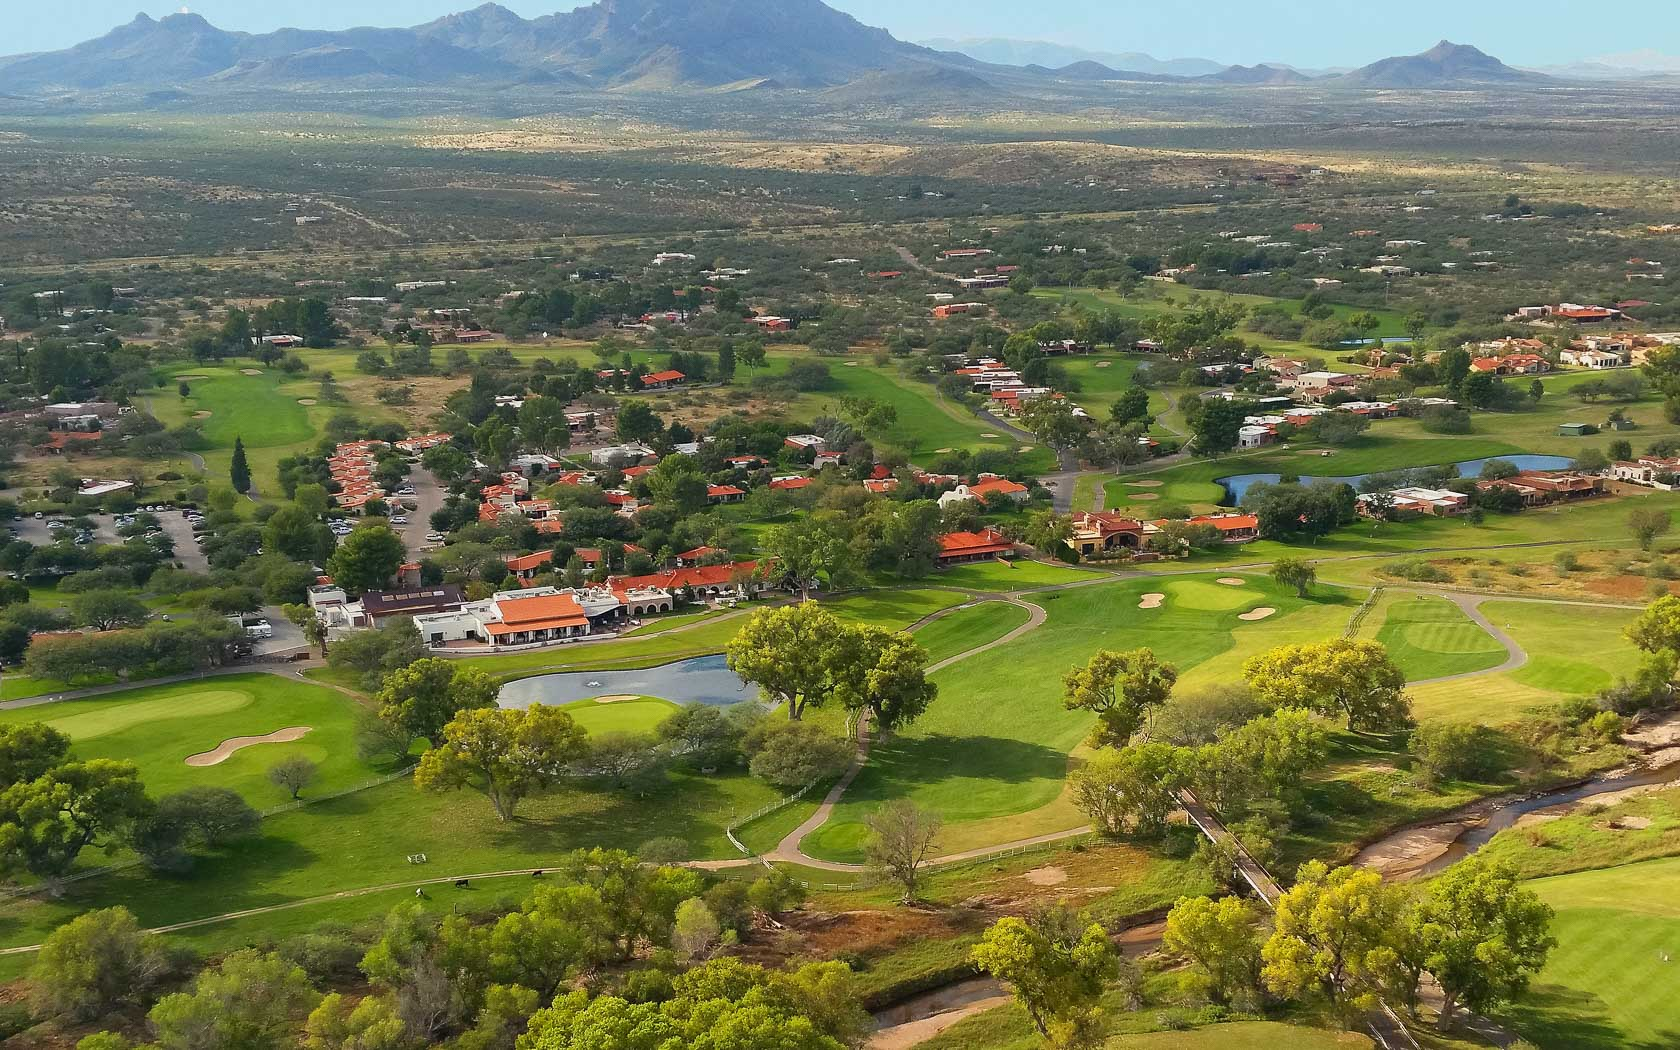 aerial view of the property including the golf course and the mountains in the distance